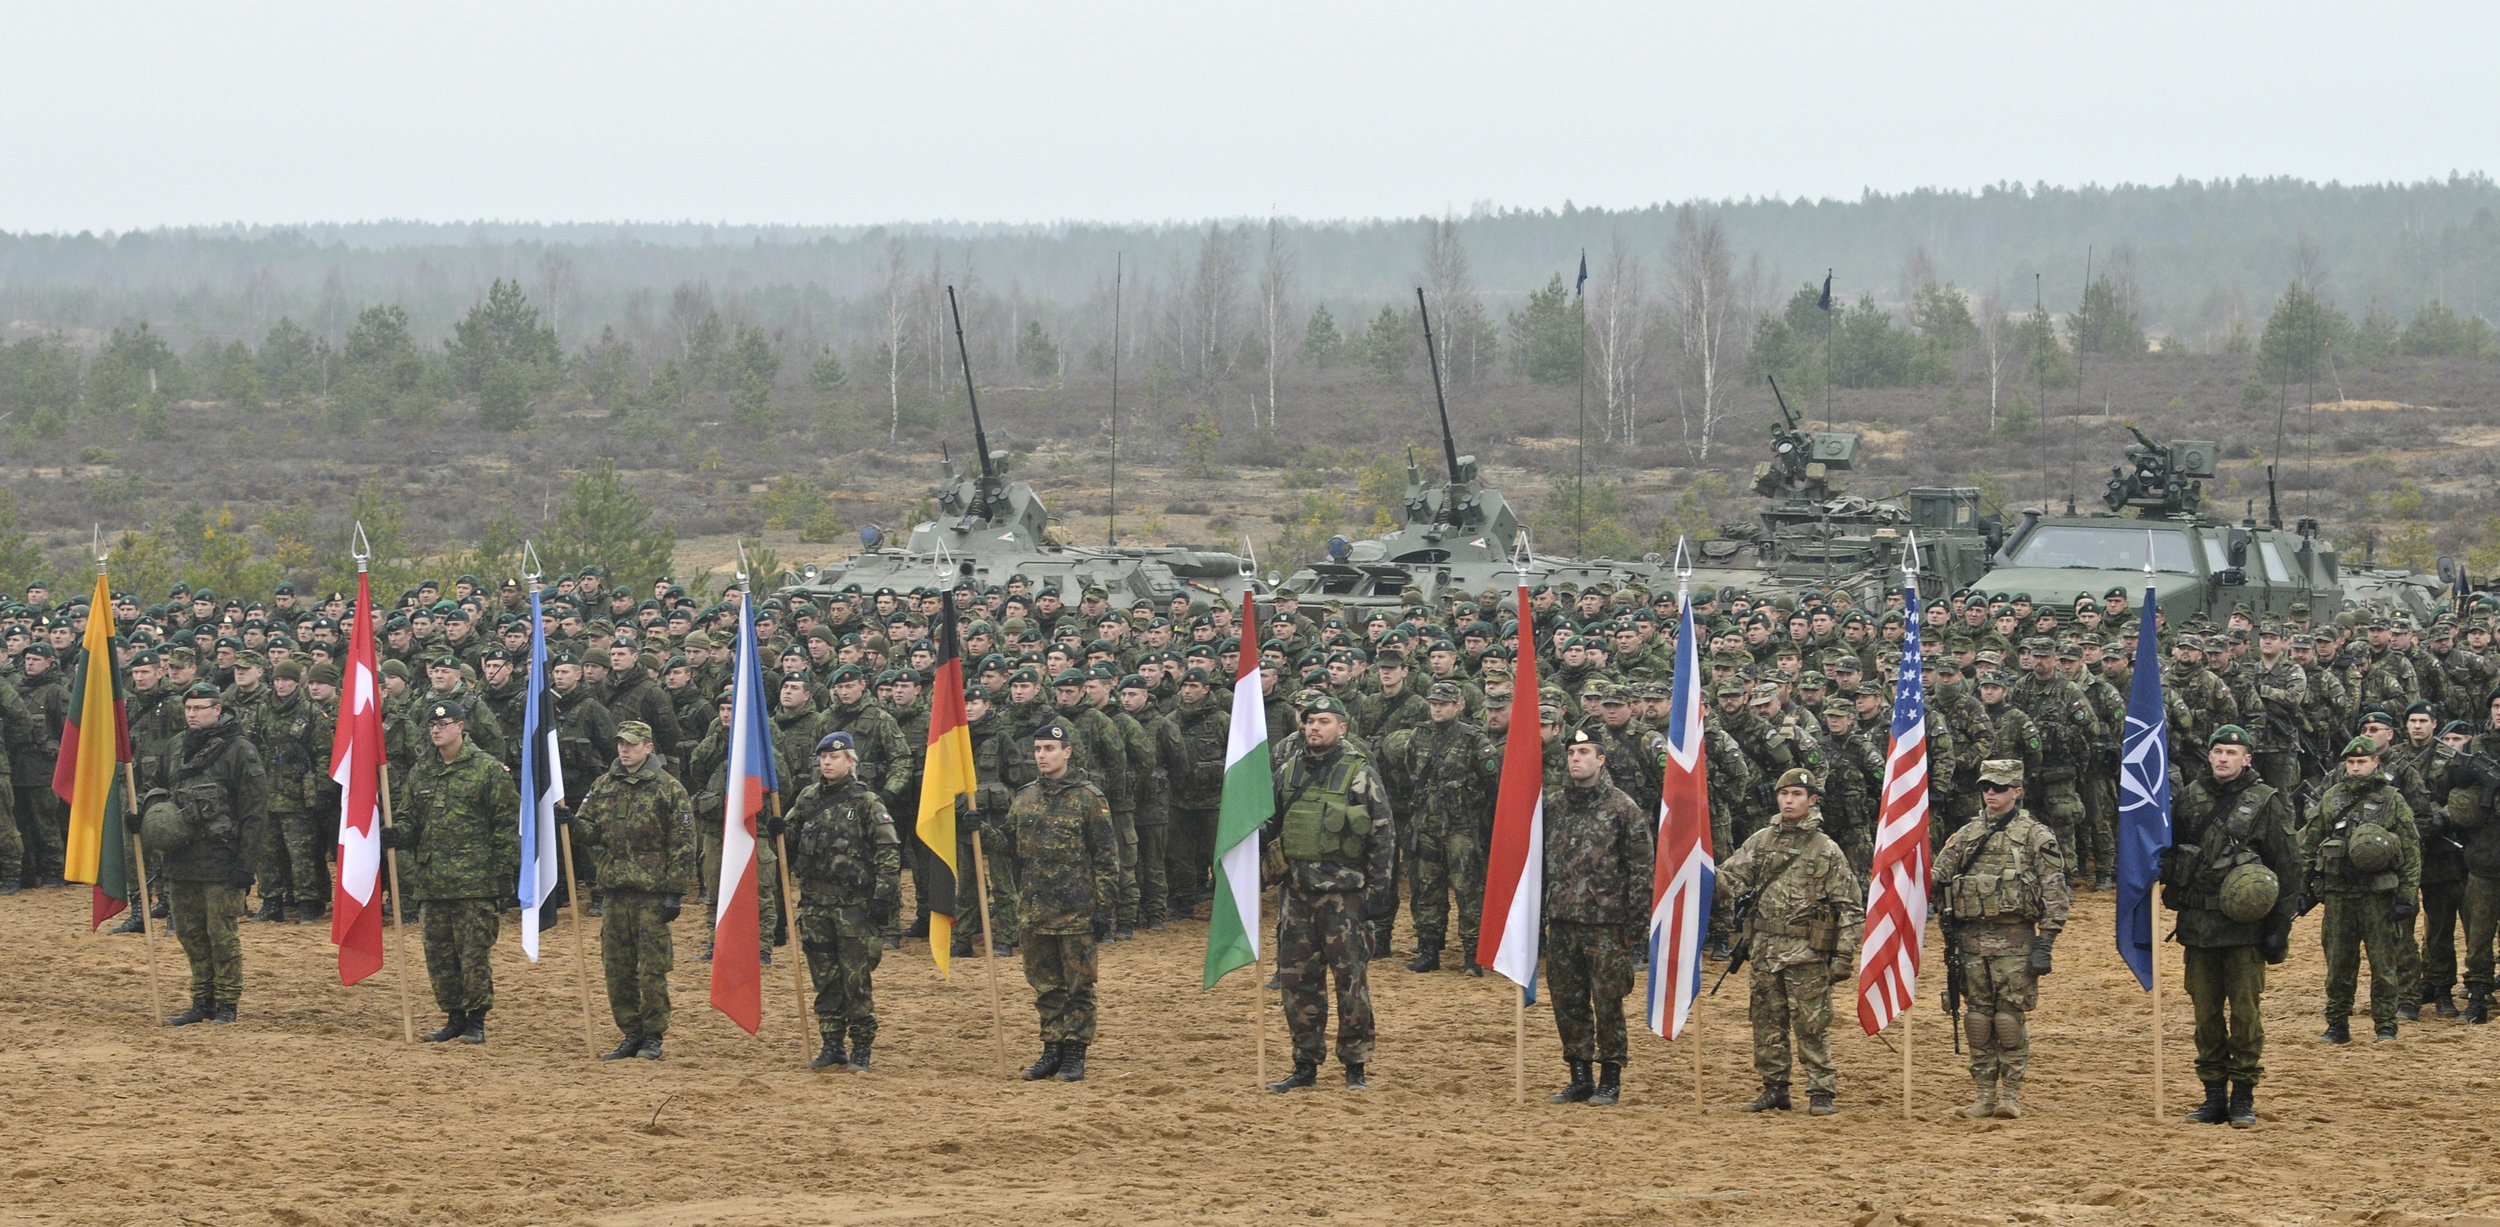 Soldiers of 9 nations pictured at the closing ceremonies of the Iron Sword 2014 exercise hosted by Lithuania, a sign of the country's continuing improvement of its material and cyber defenses. (Wikimedia Commons)